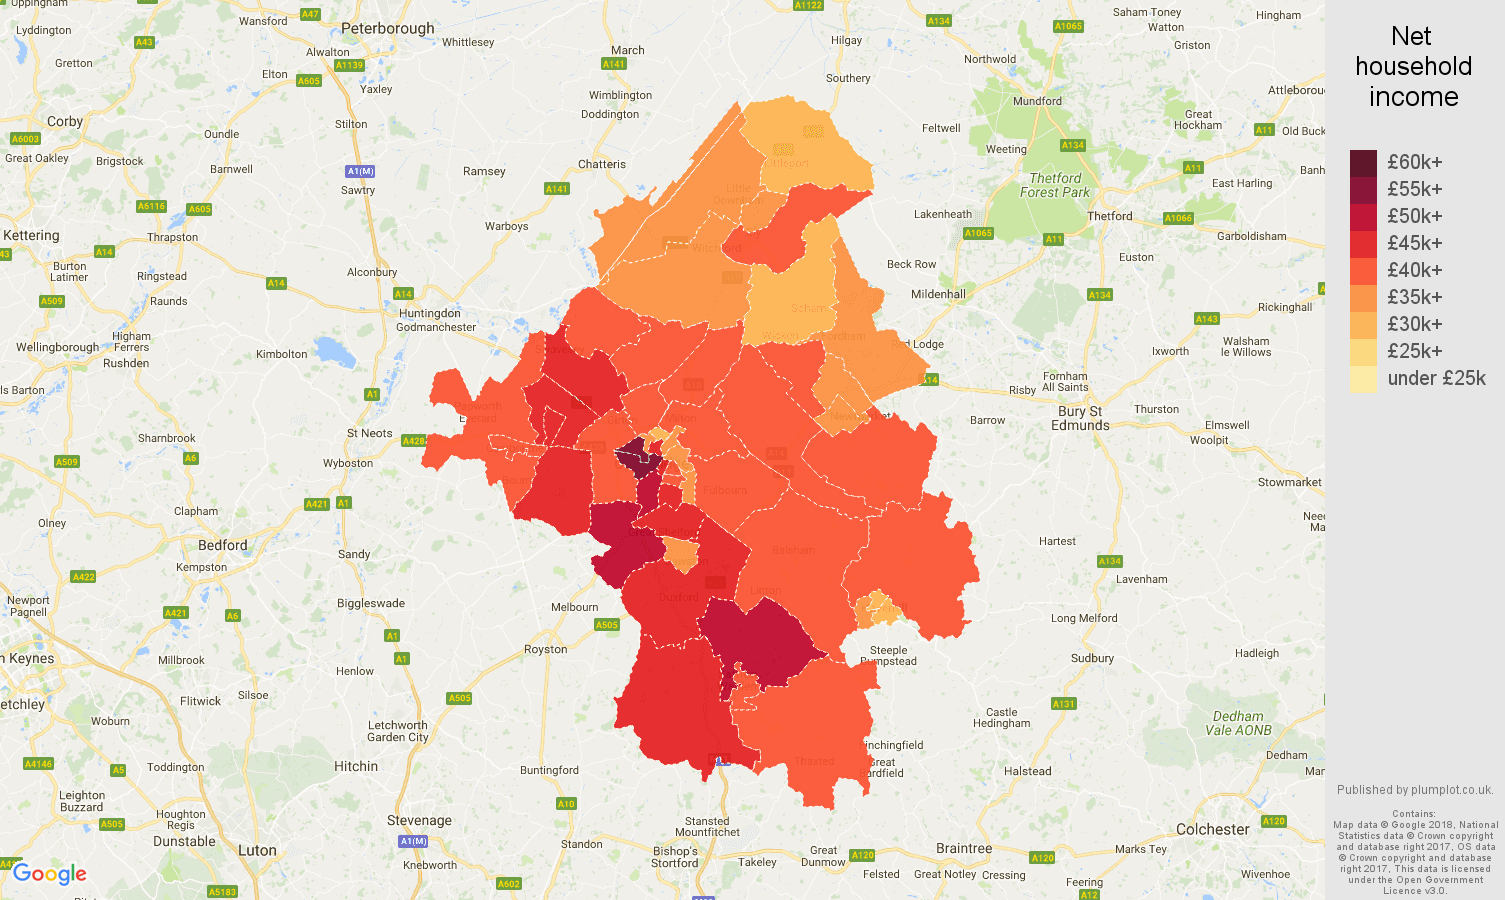 Cambridge net household income map